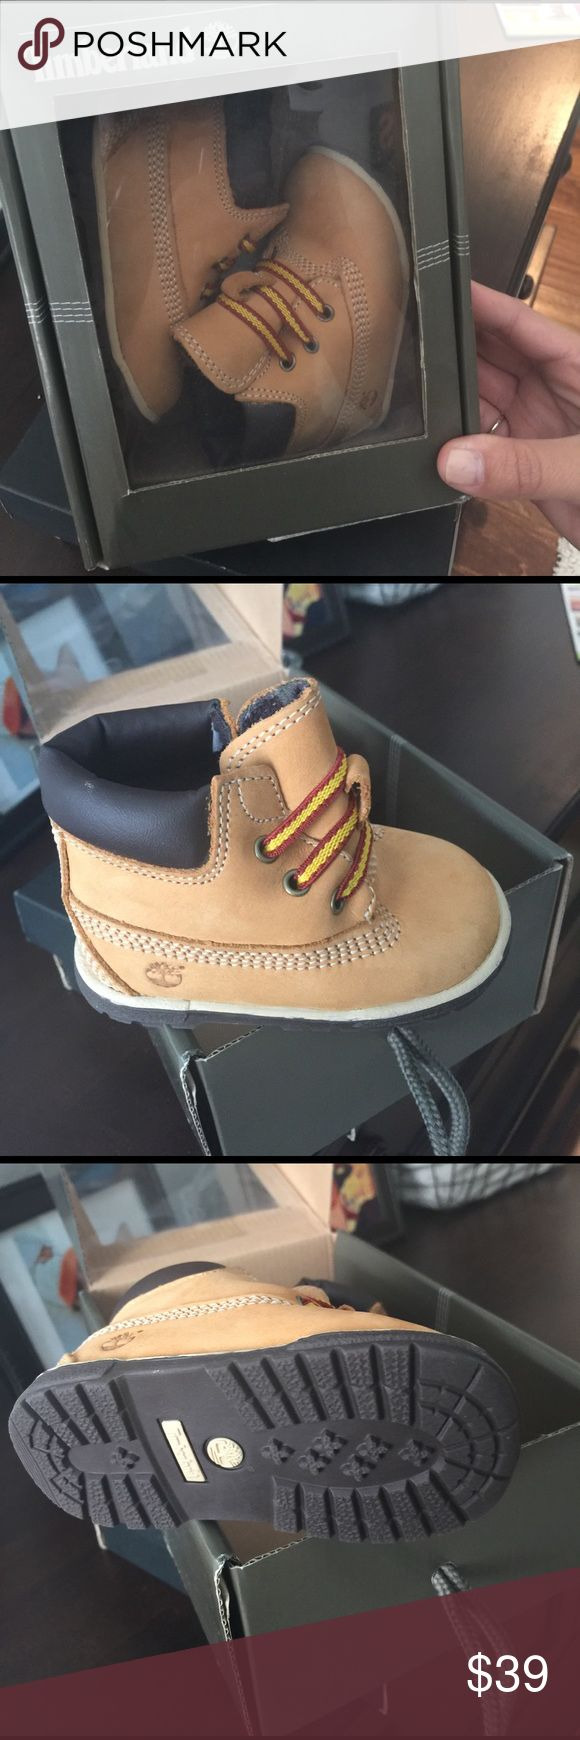 Infant timberland boots in wheat color. Never worn , infant timberland boots. Paid full price and unfortunately my son never got to wear them and now they no longer fit. Timberland Shoes Lace Up Boots